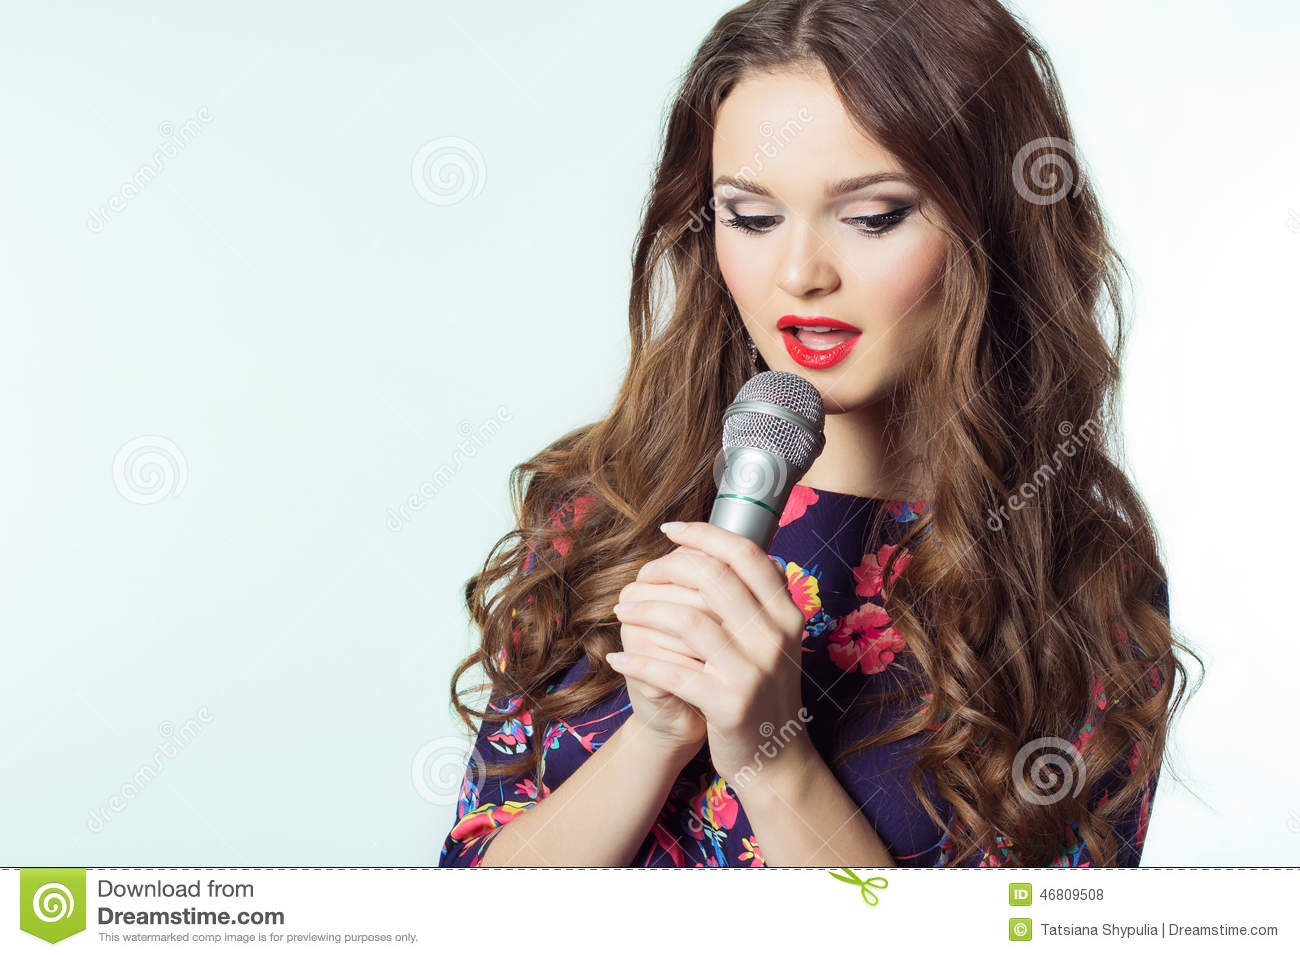 Singing song for girls